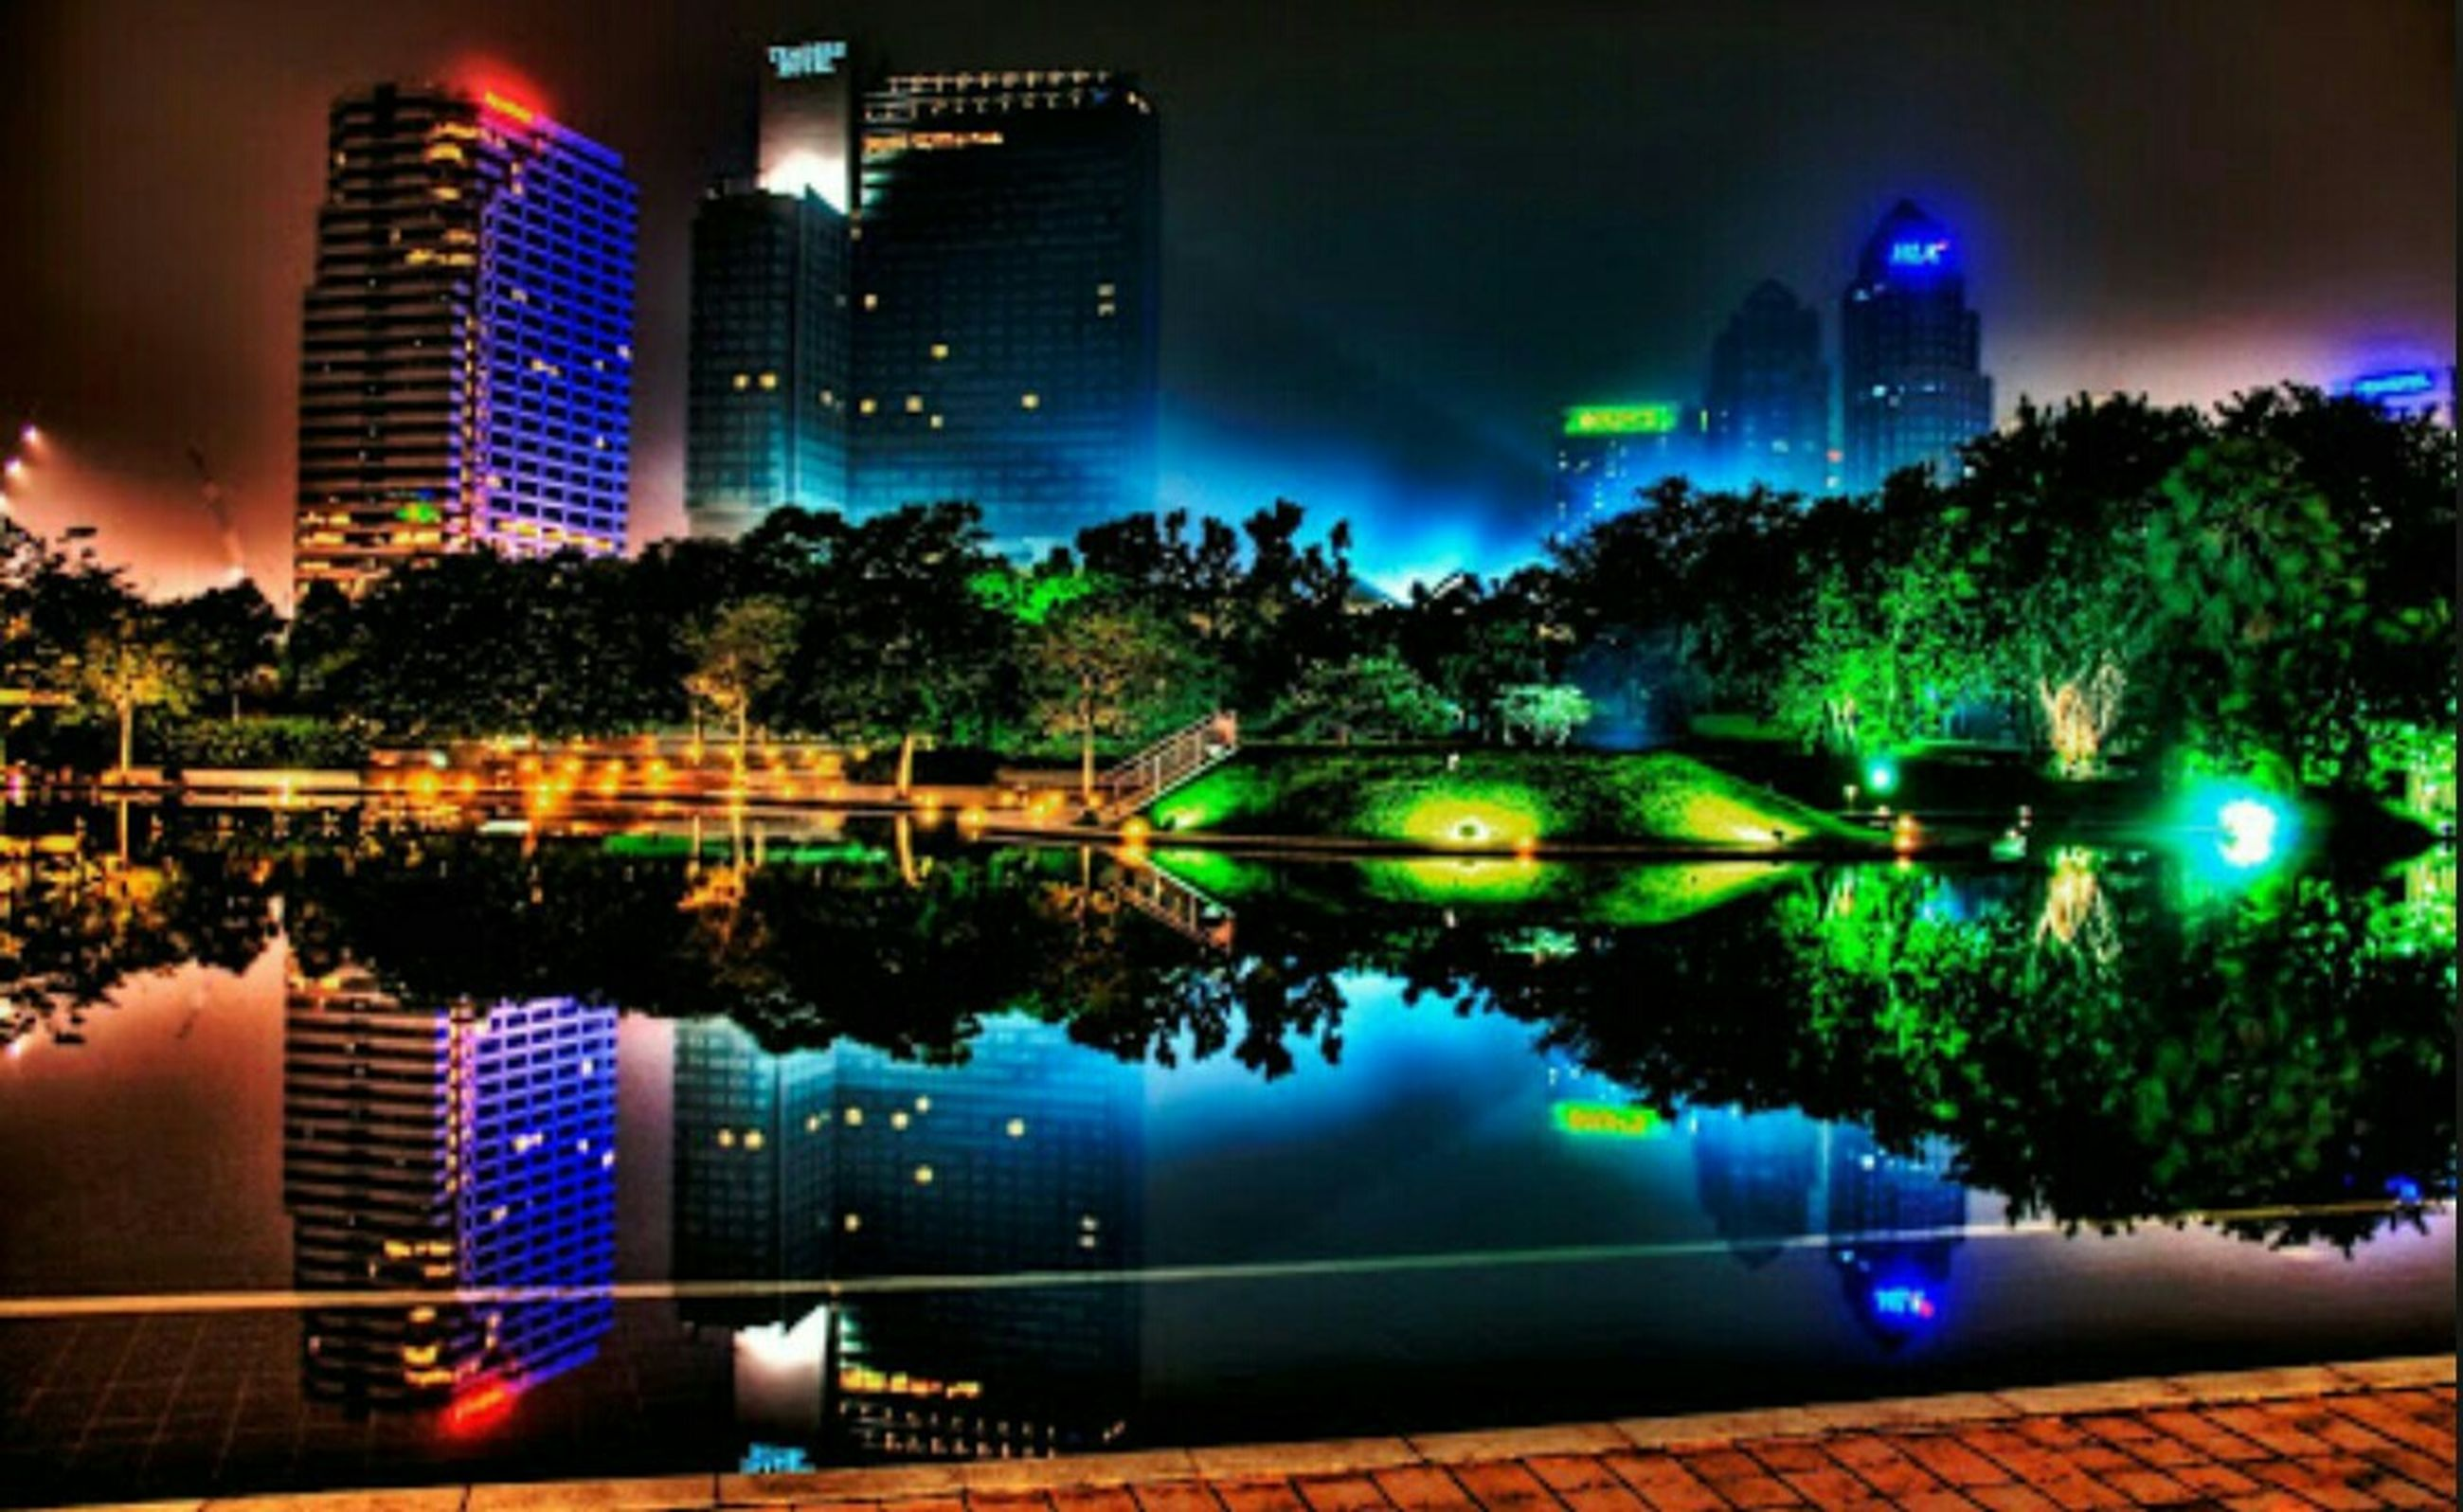 building exterior, architecture, illuminated, built structure, night, city, skyscraper, modern, cityscape, tall - high, tower, tree, office building, sky, reflection, financial district, water, urban skyline, city life, building